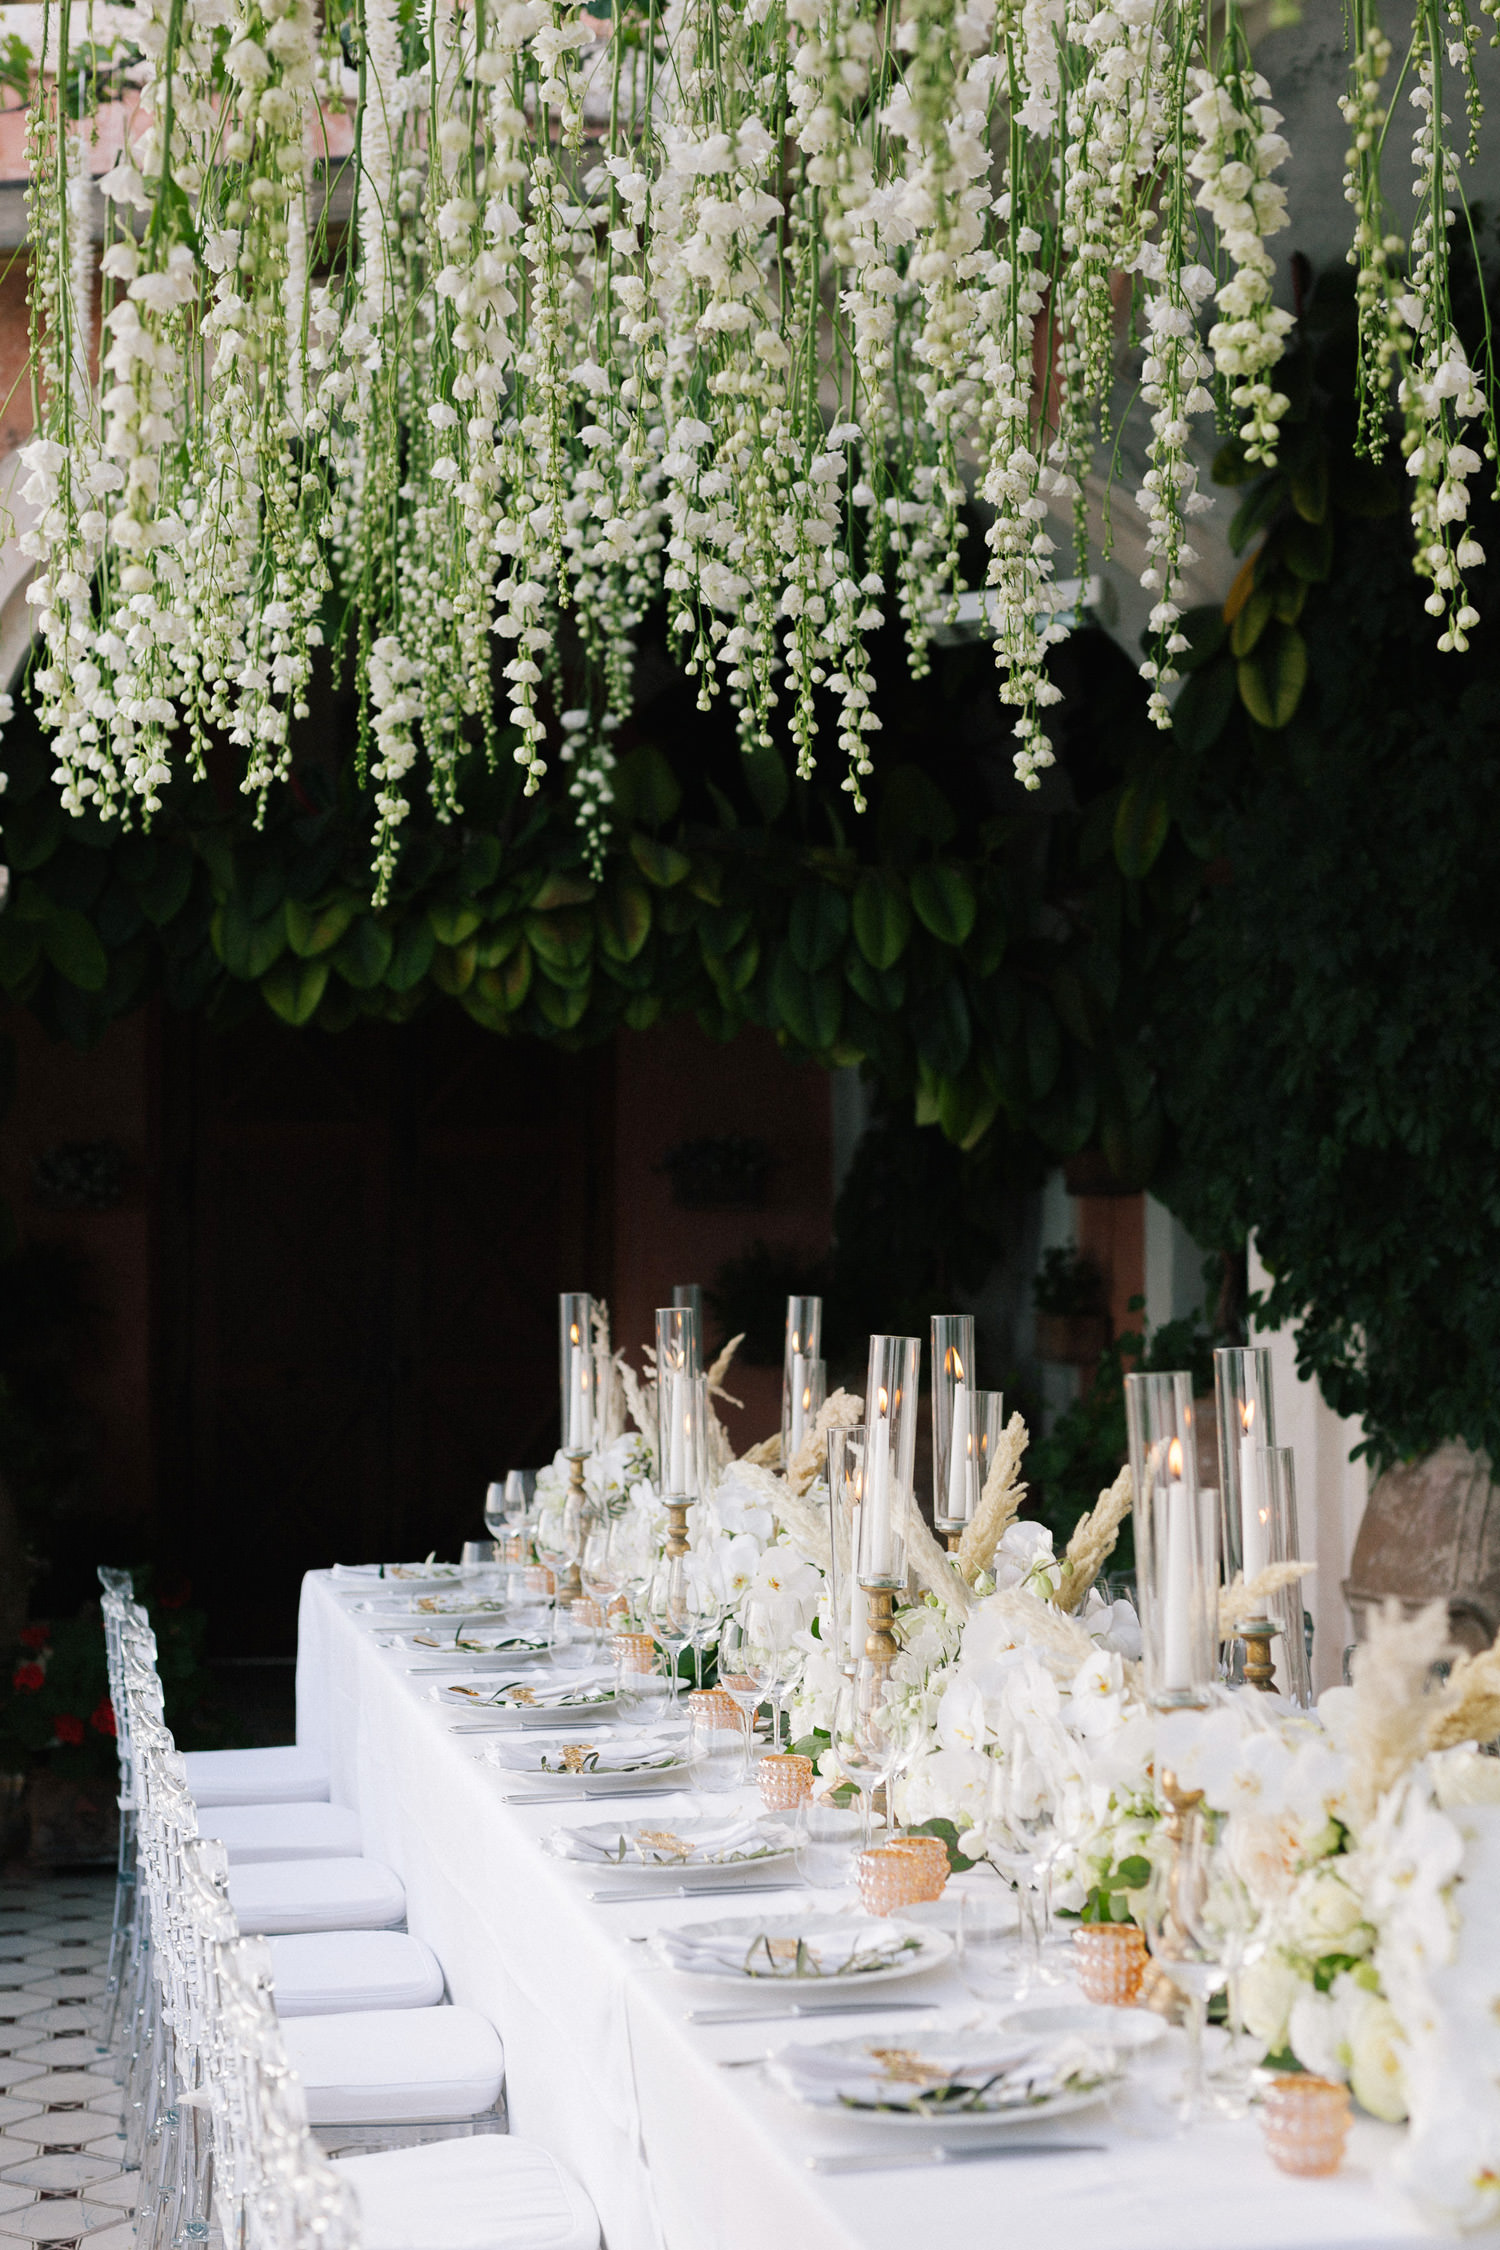 Positano Villa San Giacomo luxury wedding, stunning setting with hanging blooms | Photo: Camilla Anchisi Photography | Planning: Weddings Italy | Florals: FloraGardenaldo